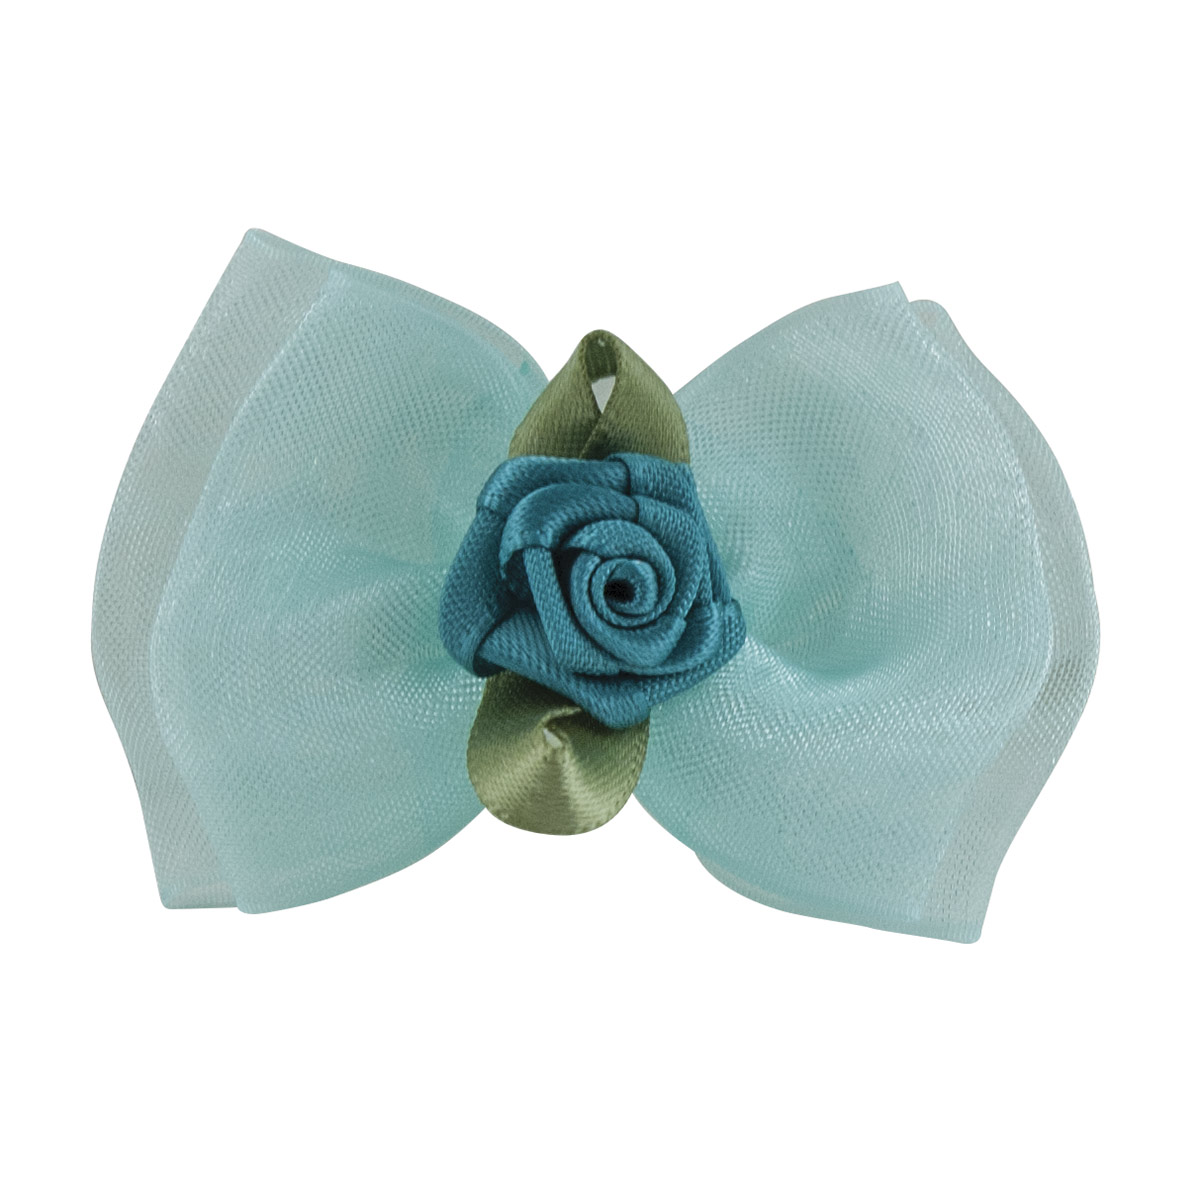 Fancy Finishes Organza Double Bows With Satin Rose Center - 24 Count Bag